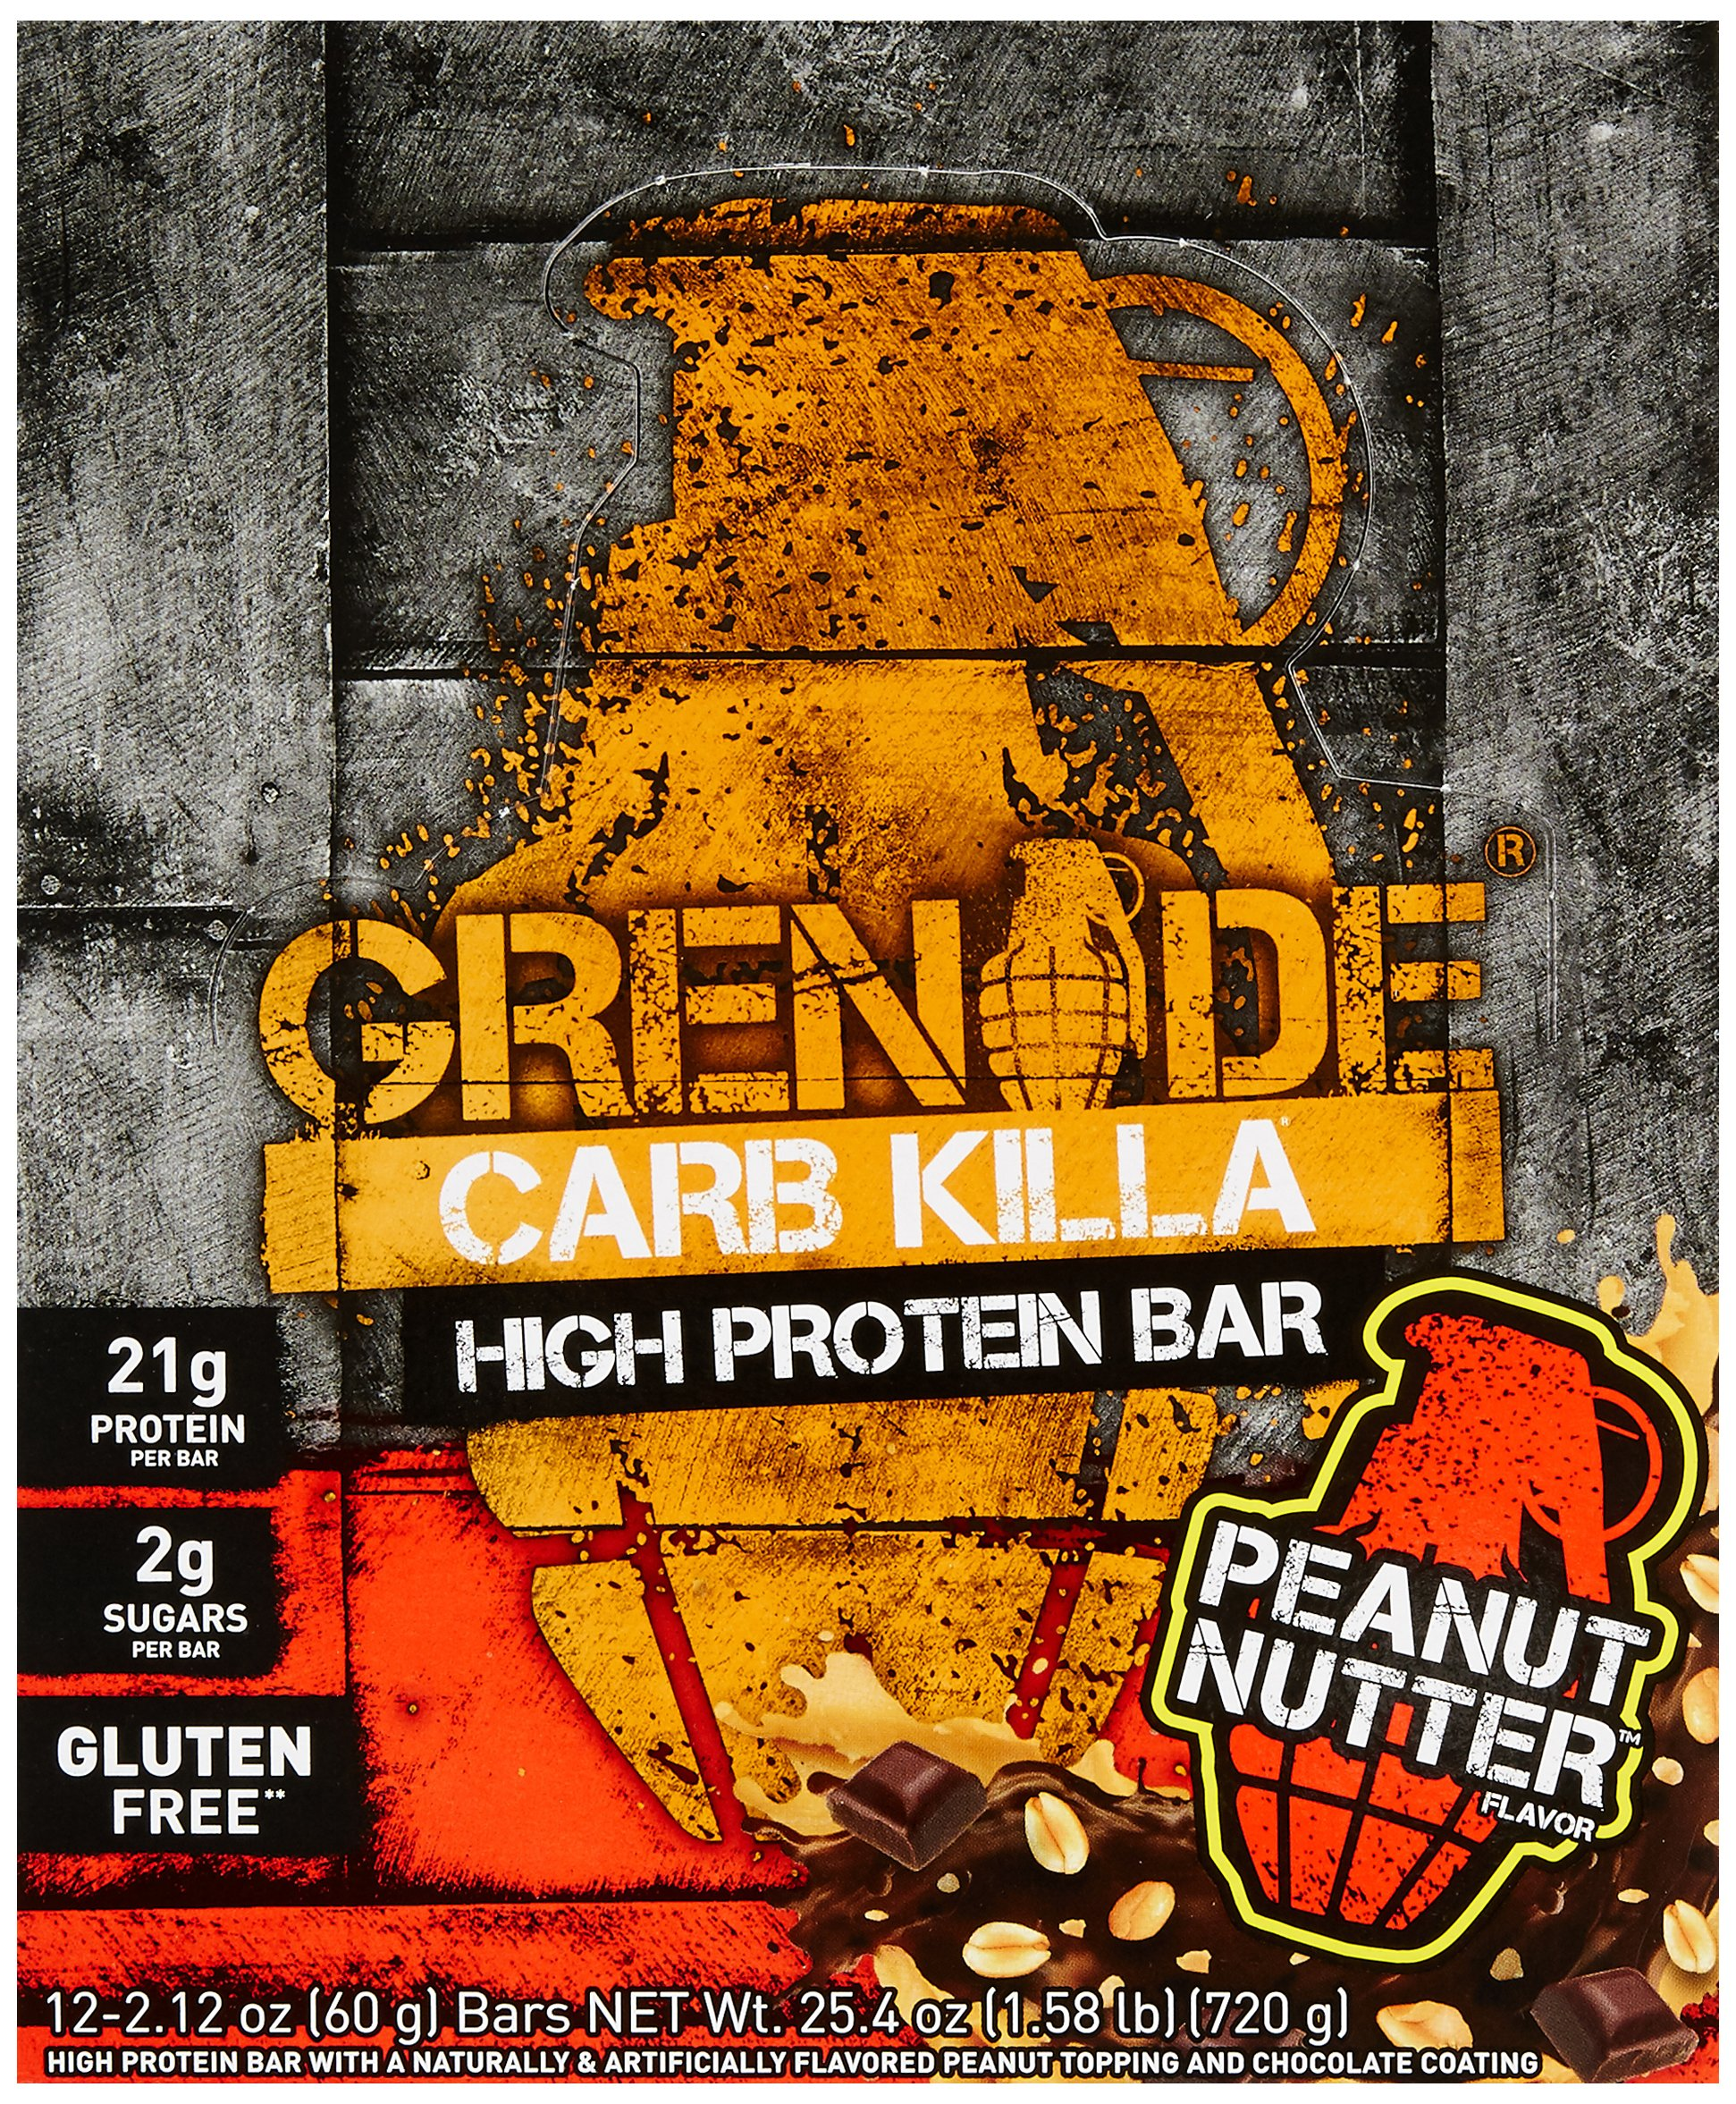 GRENADE Carb Killa Protein Bars, Triple-Layered Deliciously Crunchy High Protein Bar - Suitable Meal Replacement For Weight Loss, Peanut Nutter, 12 Bars